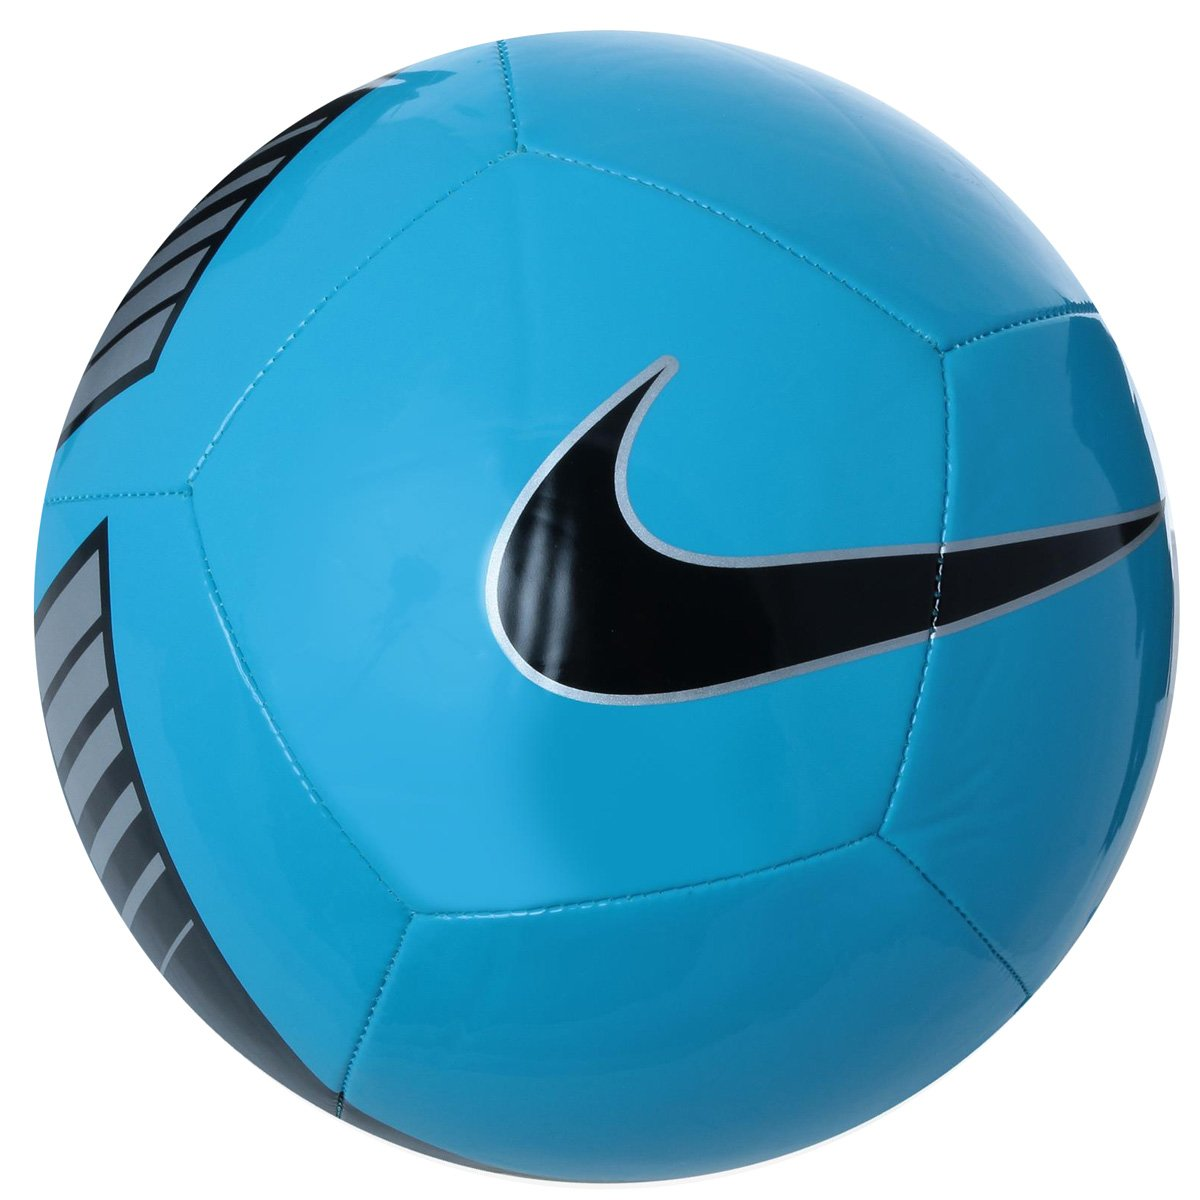 140c2e0117 Amplie a imagem. Bola Campo Nike Pitch Training  Bola Campo Nike Pitch  Training  Bola Campo Nike Pitch Training